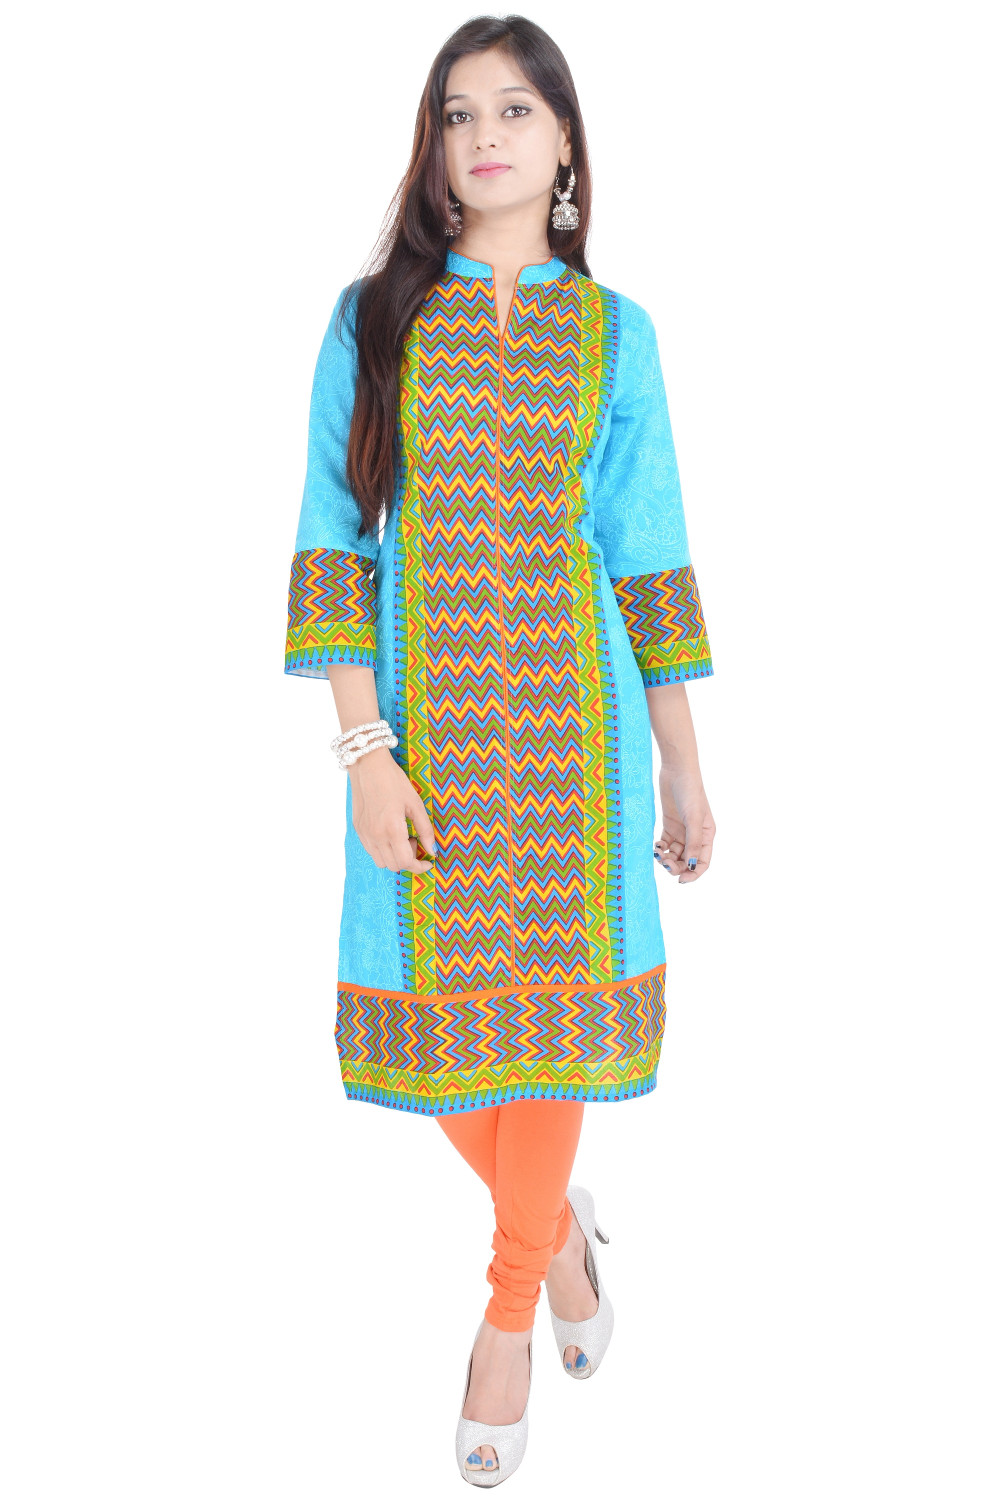 Fashion apparel wholesale suppliers 25